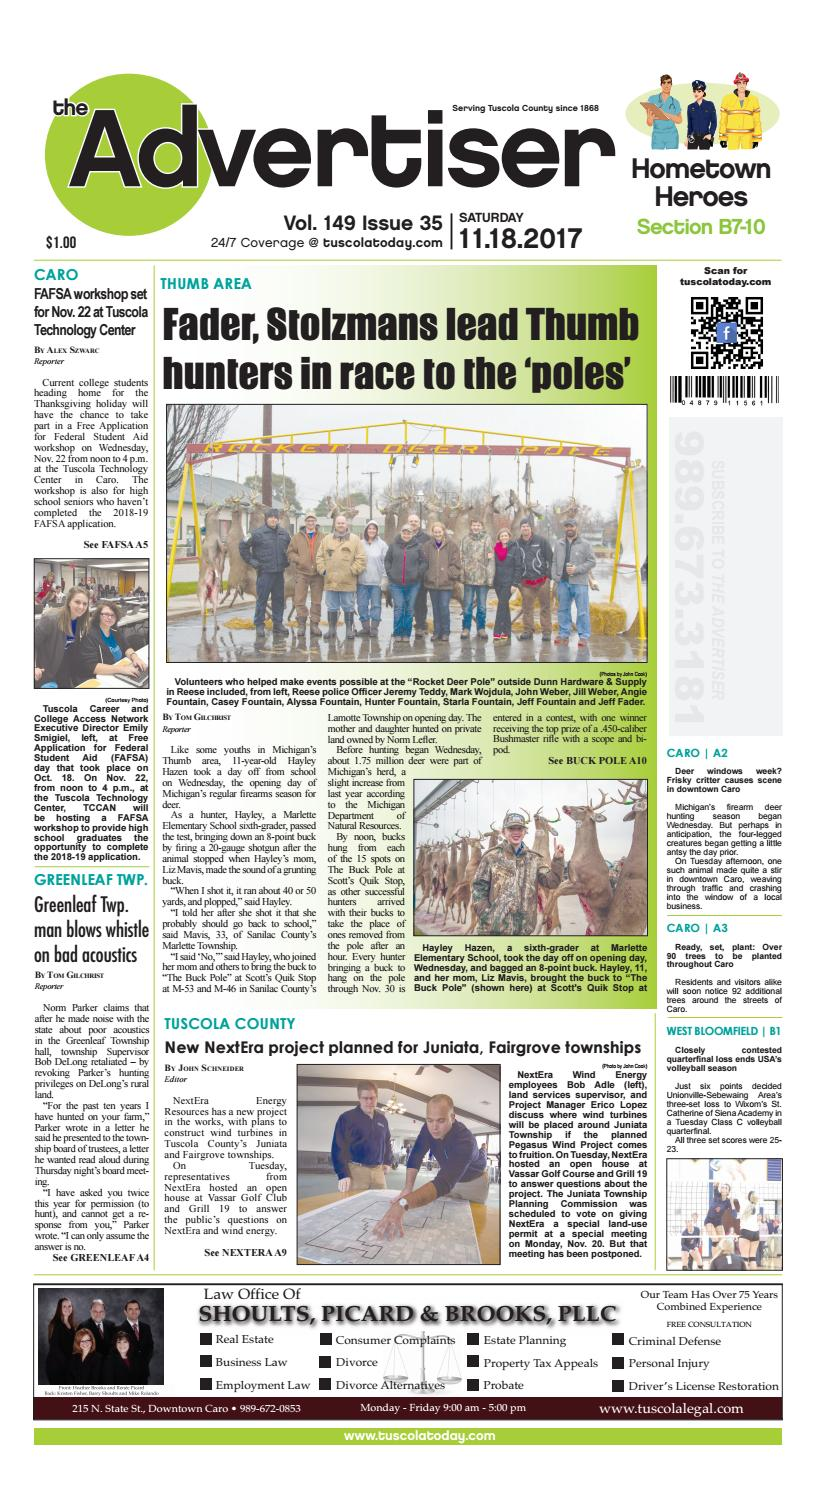 15483c5cff Tca 11 18 17 all pages by Tuscola County Advertiser - issuu